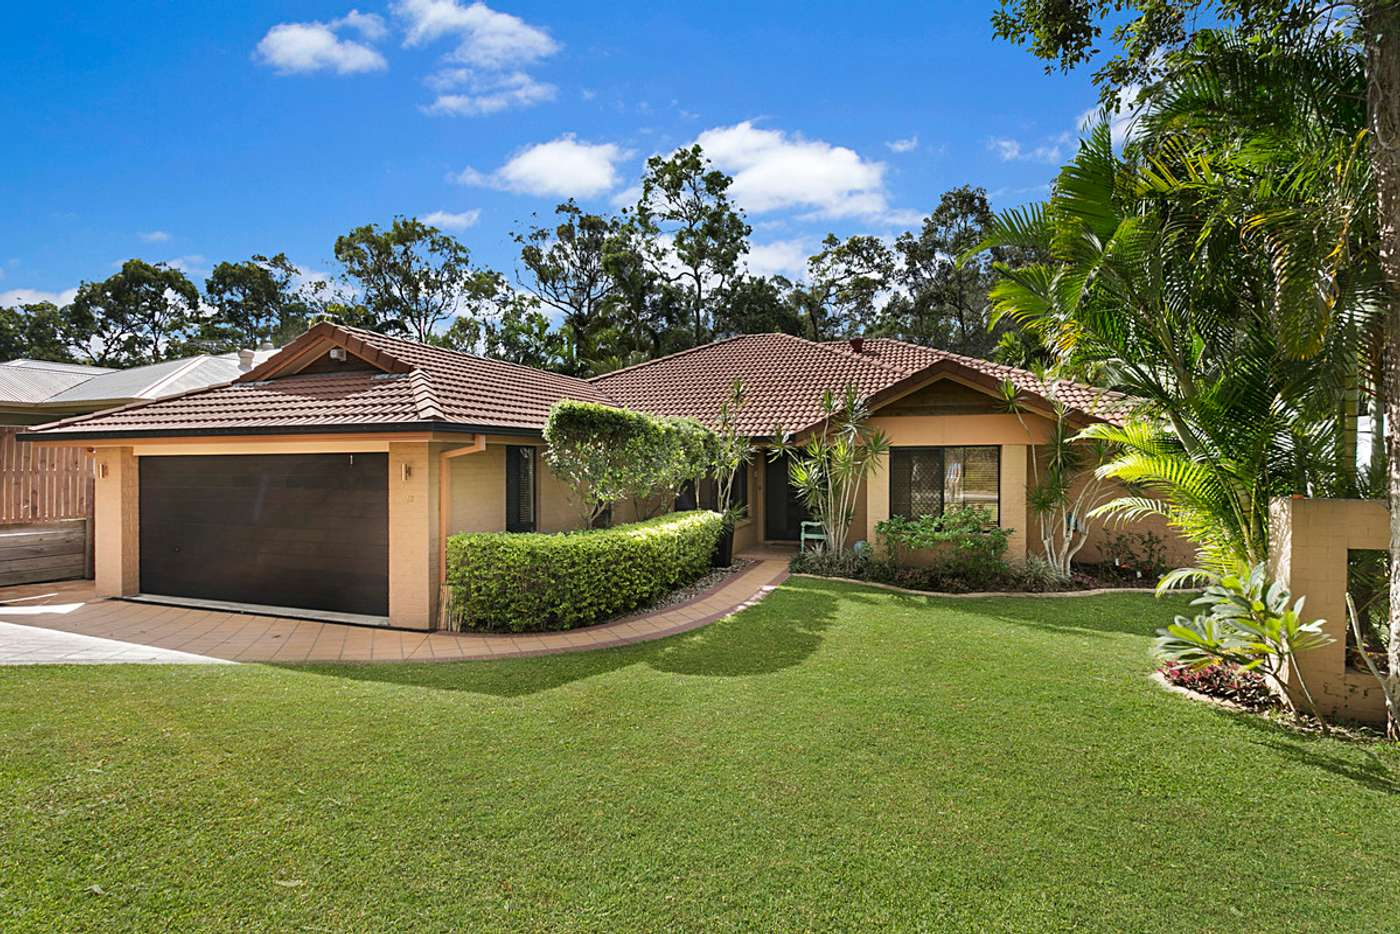 Main view of Homely house listing, 22 Barklya Crescent, Sinnamon Park QLD 4073